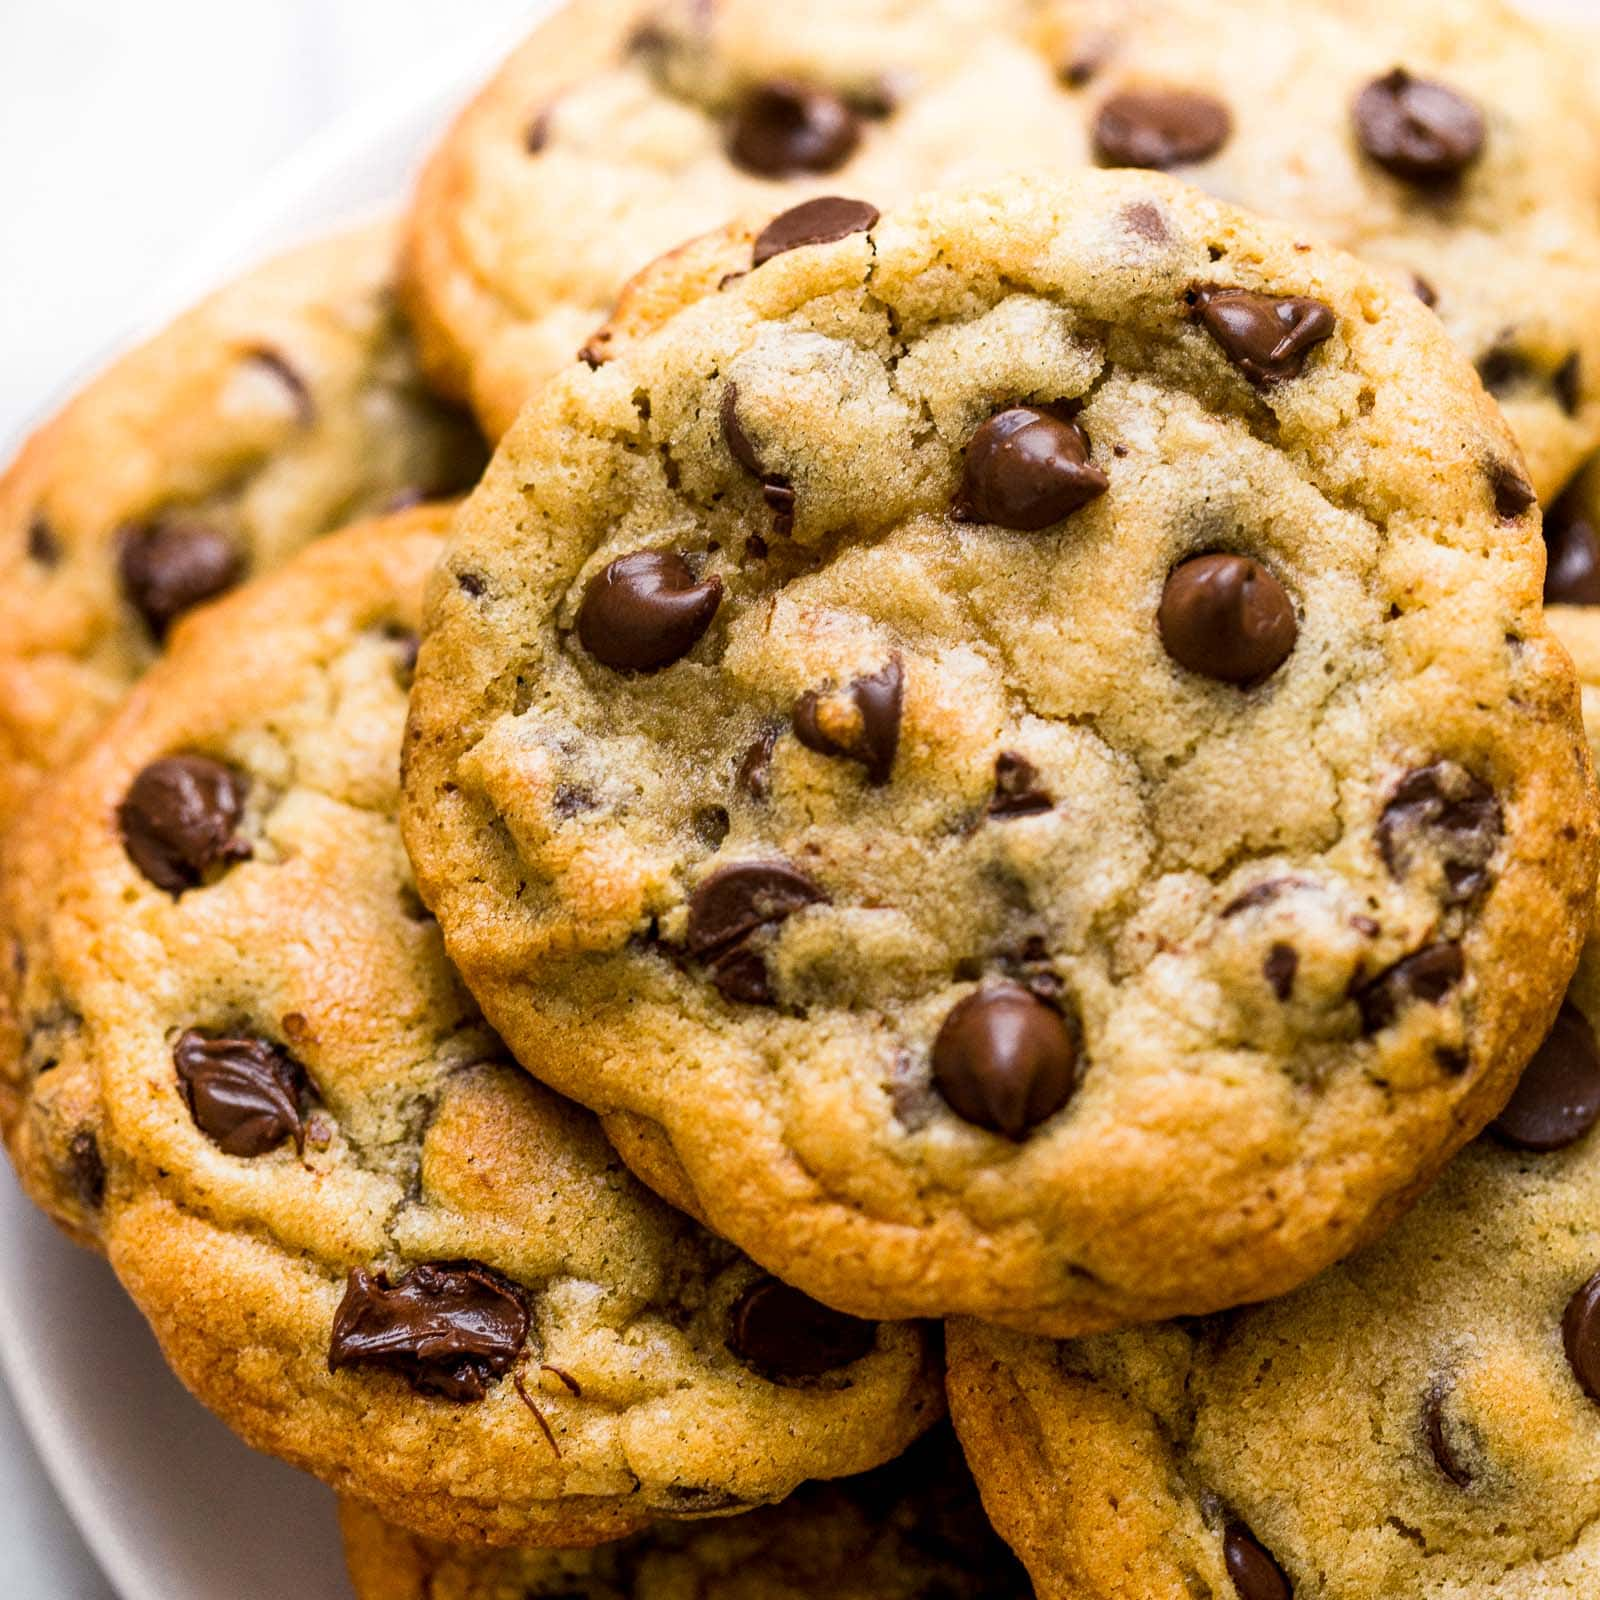 Ultra thick bakery style chocolate chip cookie recipe